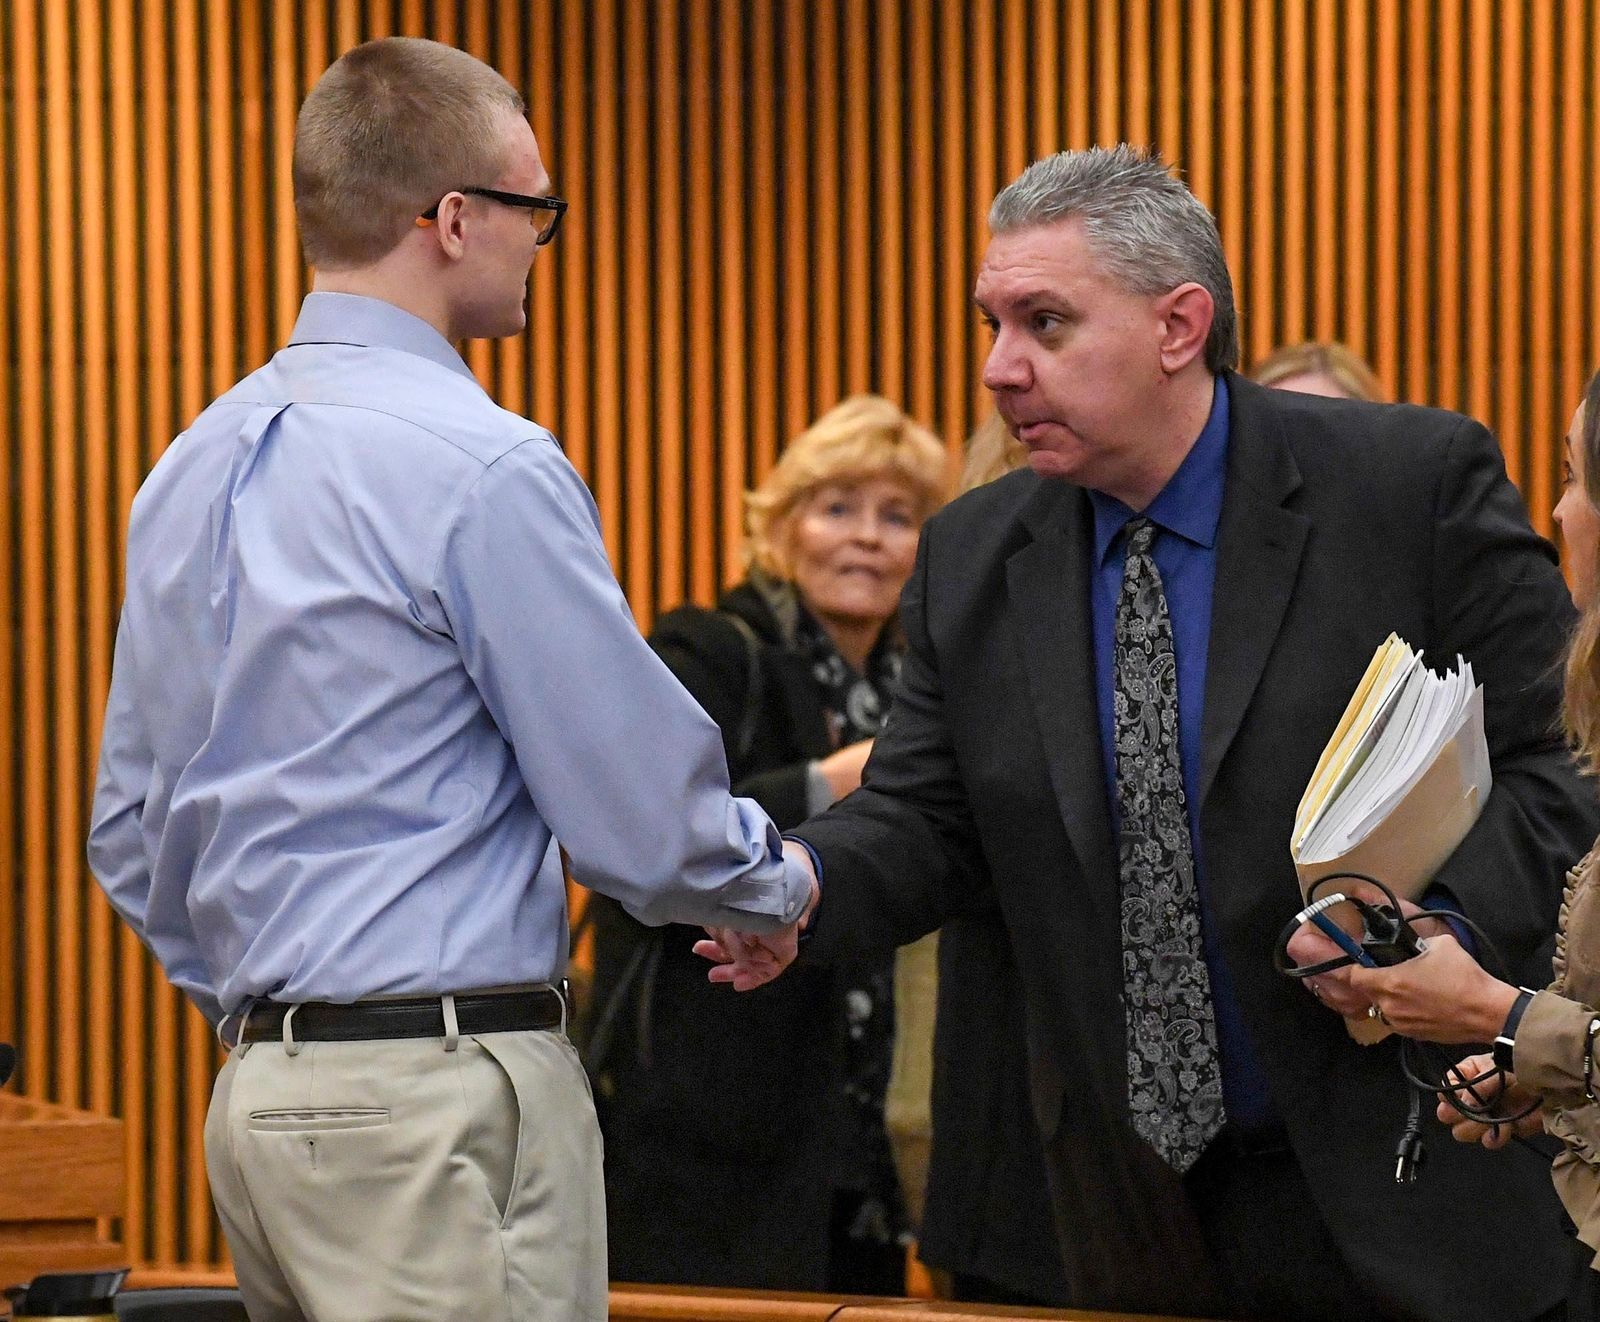 Clinical psychologist Dr. Albert Gordon Teichner, right, shakes hands with defendant Jesse Osborne after a sentence-related hearing at the Anderson County Courthouse, Wednesday, Nov. 13, 2019, in Anderson, S.C.  Osborne, a teen who killed his father at home before fatally shooting a first-grader on a South Carolina elementary school playground, is either a traumatized son who can be rehabilitated or a dangerous and pathological liar with no remorse, according to the conflicting testimony of two mental health professionals Wednesday.  (Ken Ruinard/The Independent-Mail via AP)